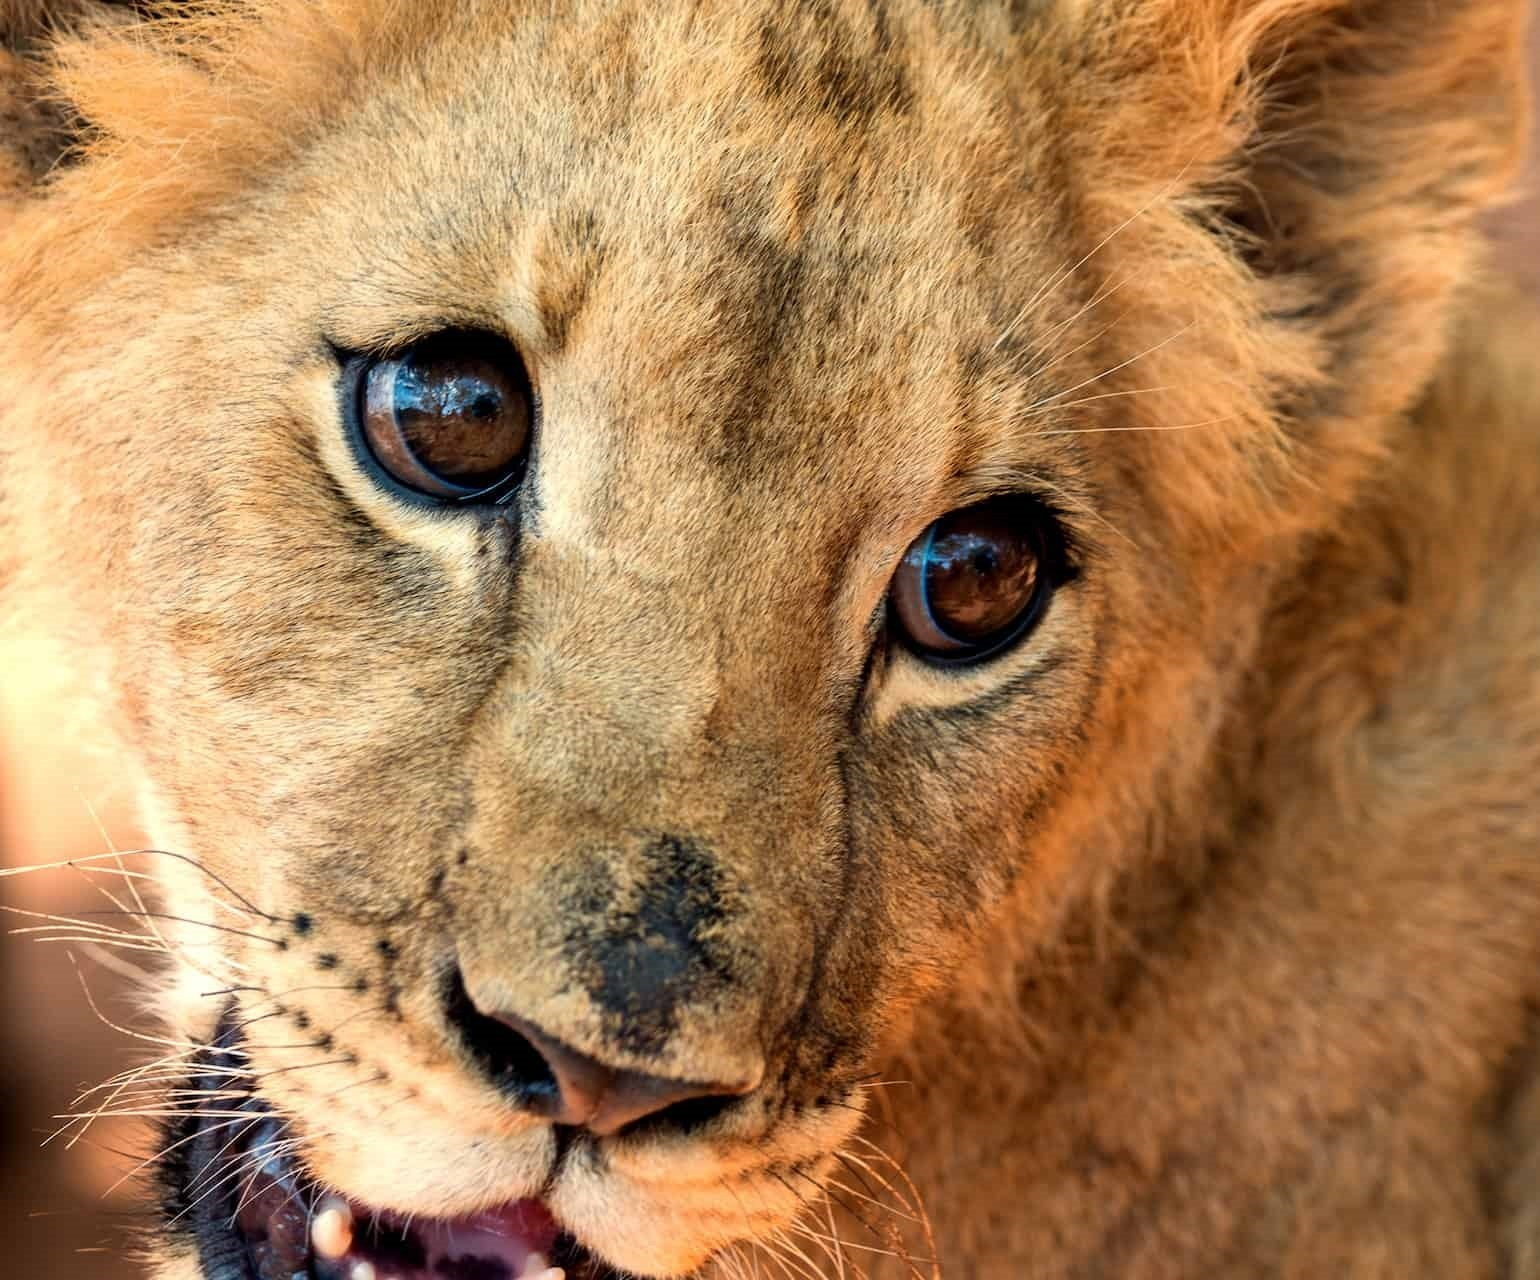 South Africa's President Ramaposa petitioned to halt big cat breeding